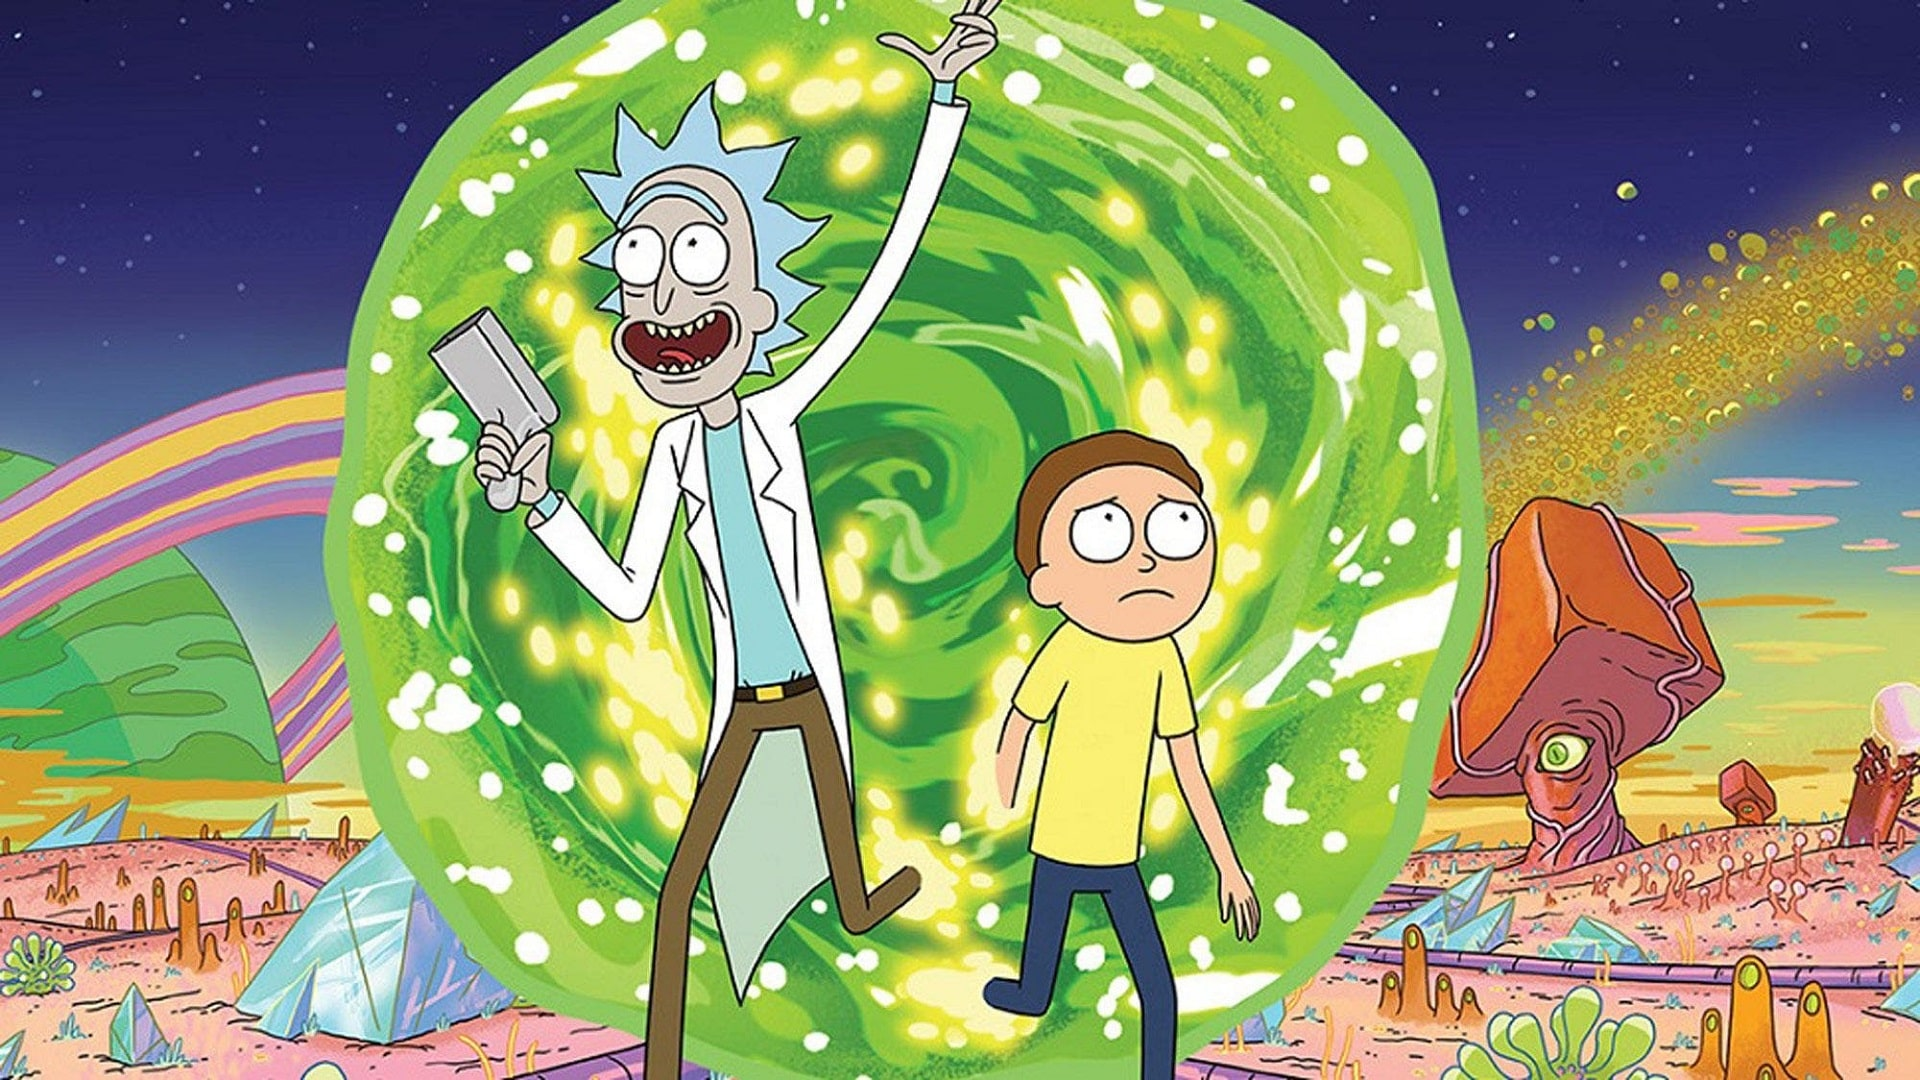 Lanzan trailer de la quinta temporada de Rick and Morty